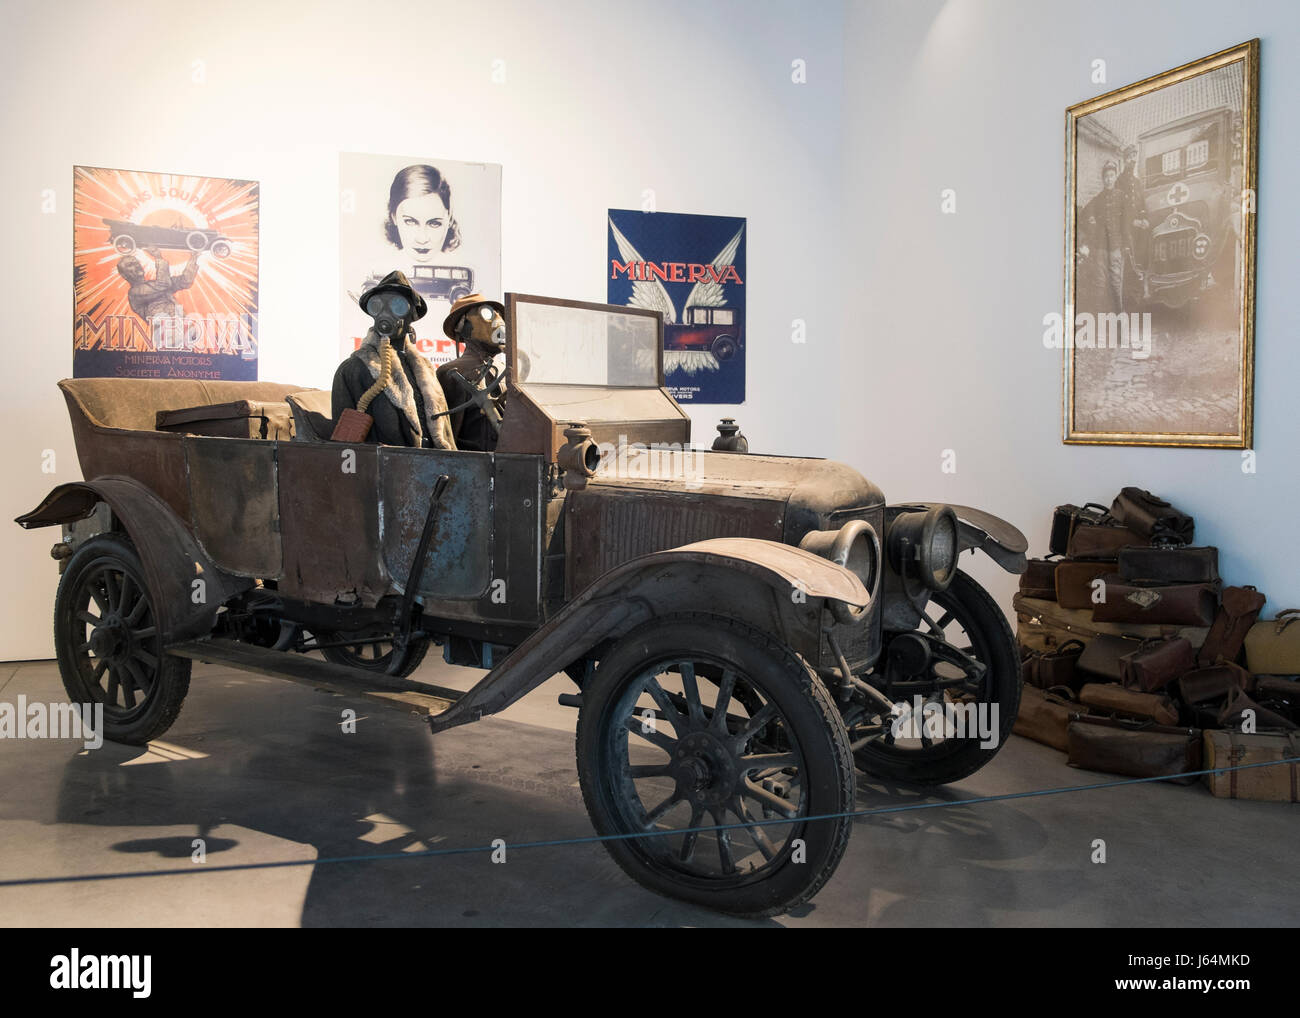 Minerva. Automobile museum of Málaga, Andalusia, Spain. - Stock Image